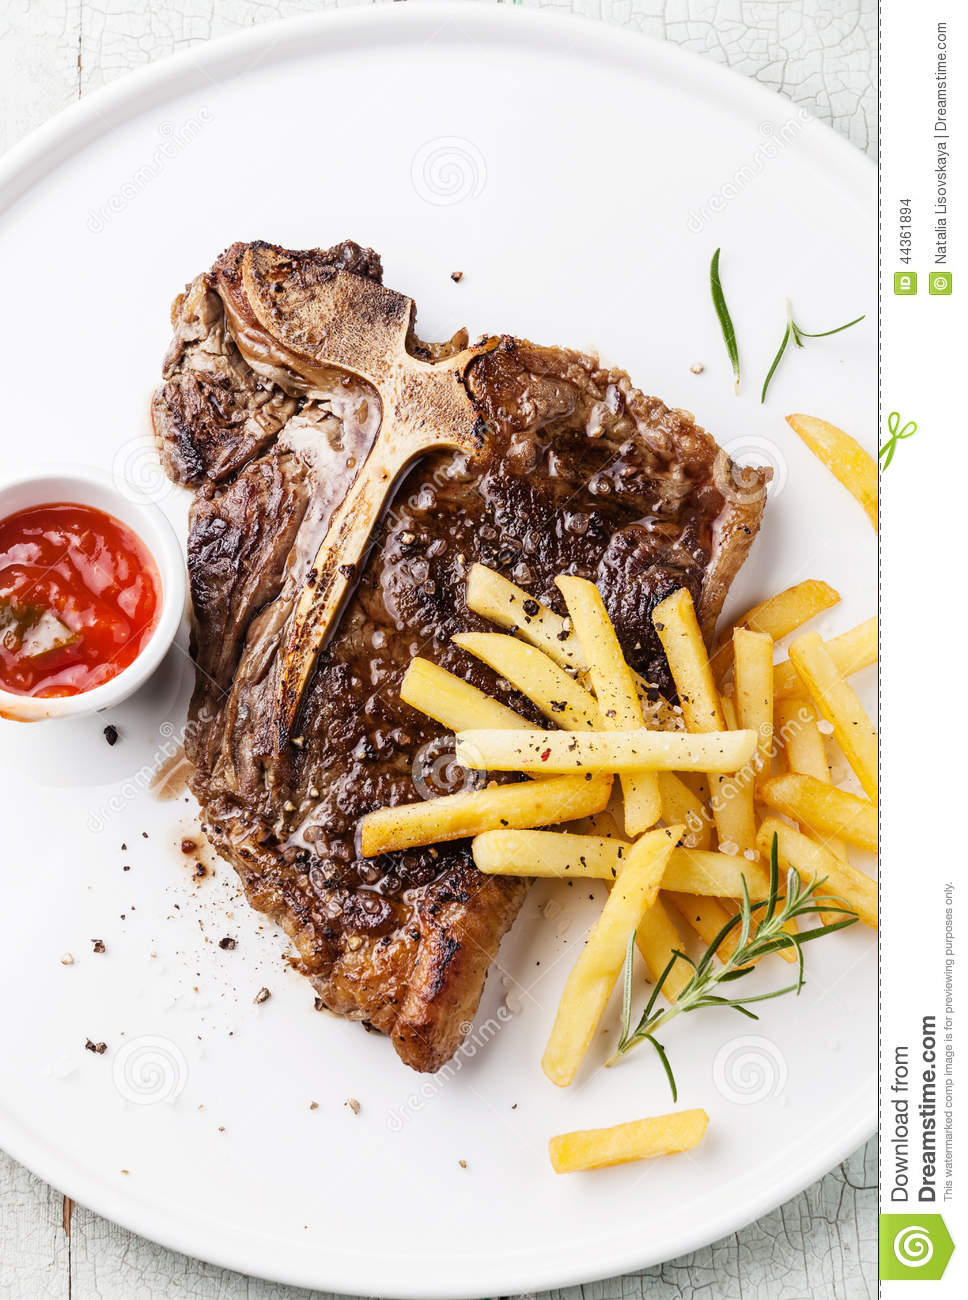 T-Bone Steak With French Fries Stock Photo - Image of meal, dinner: 44361894